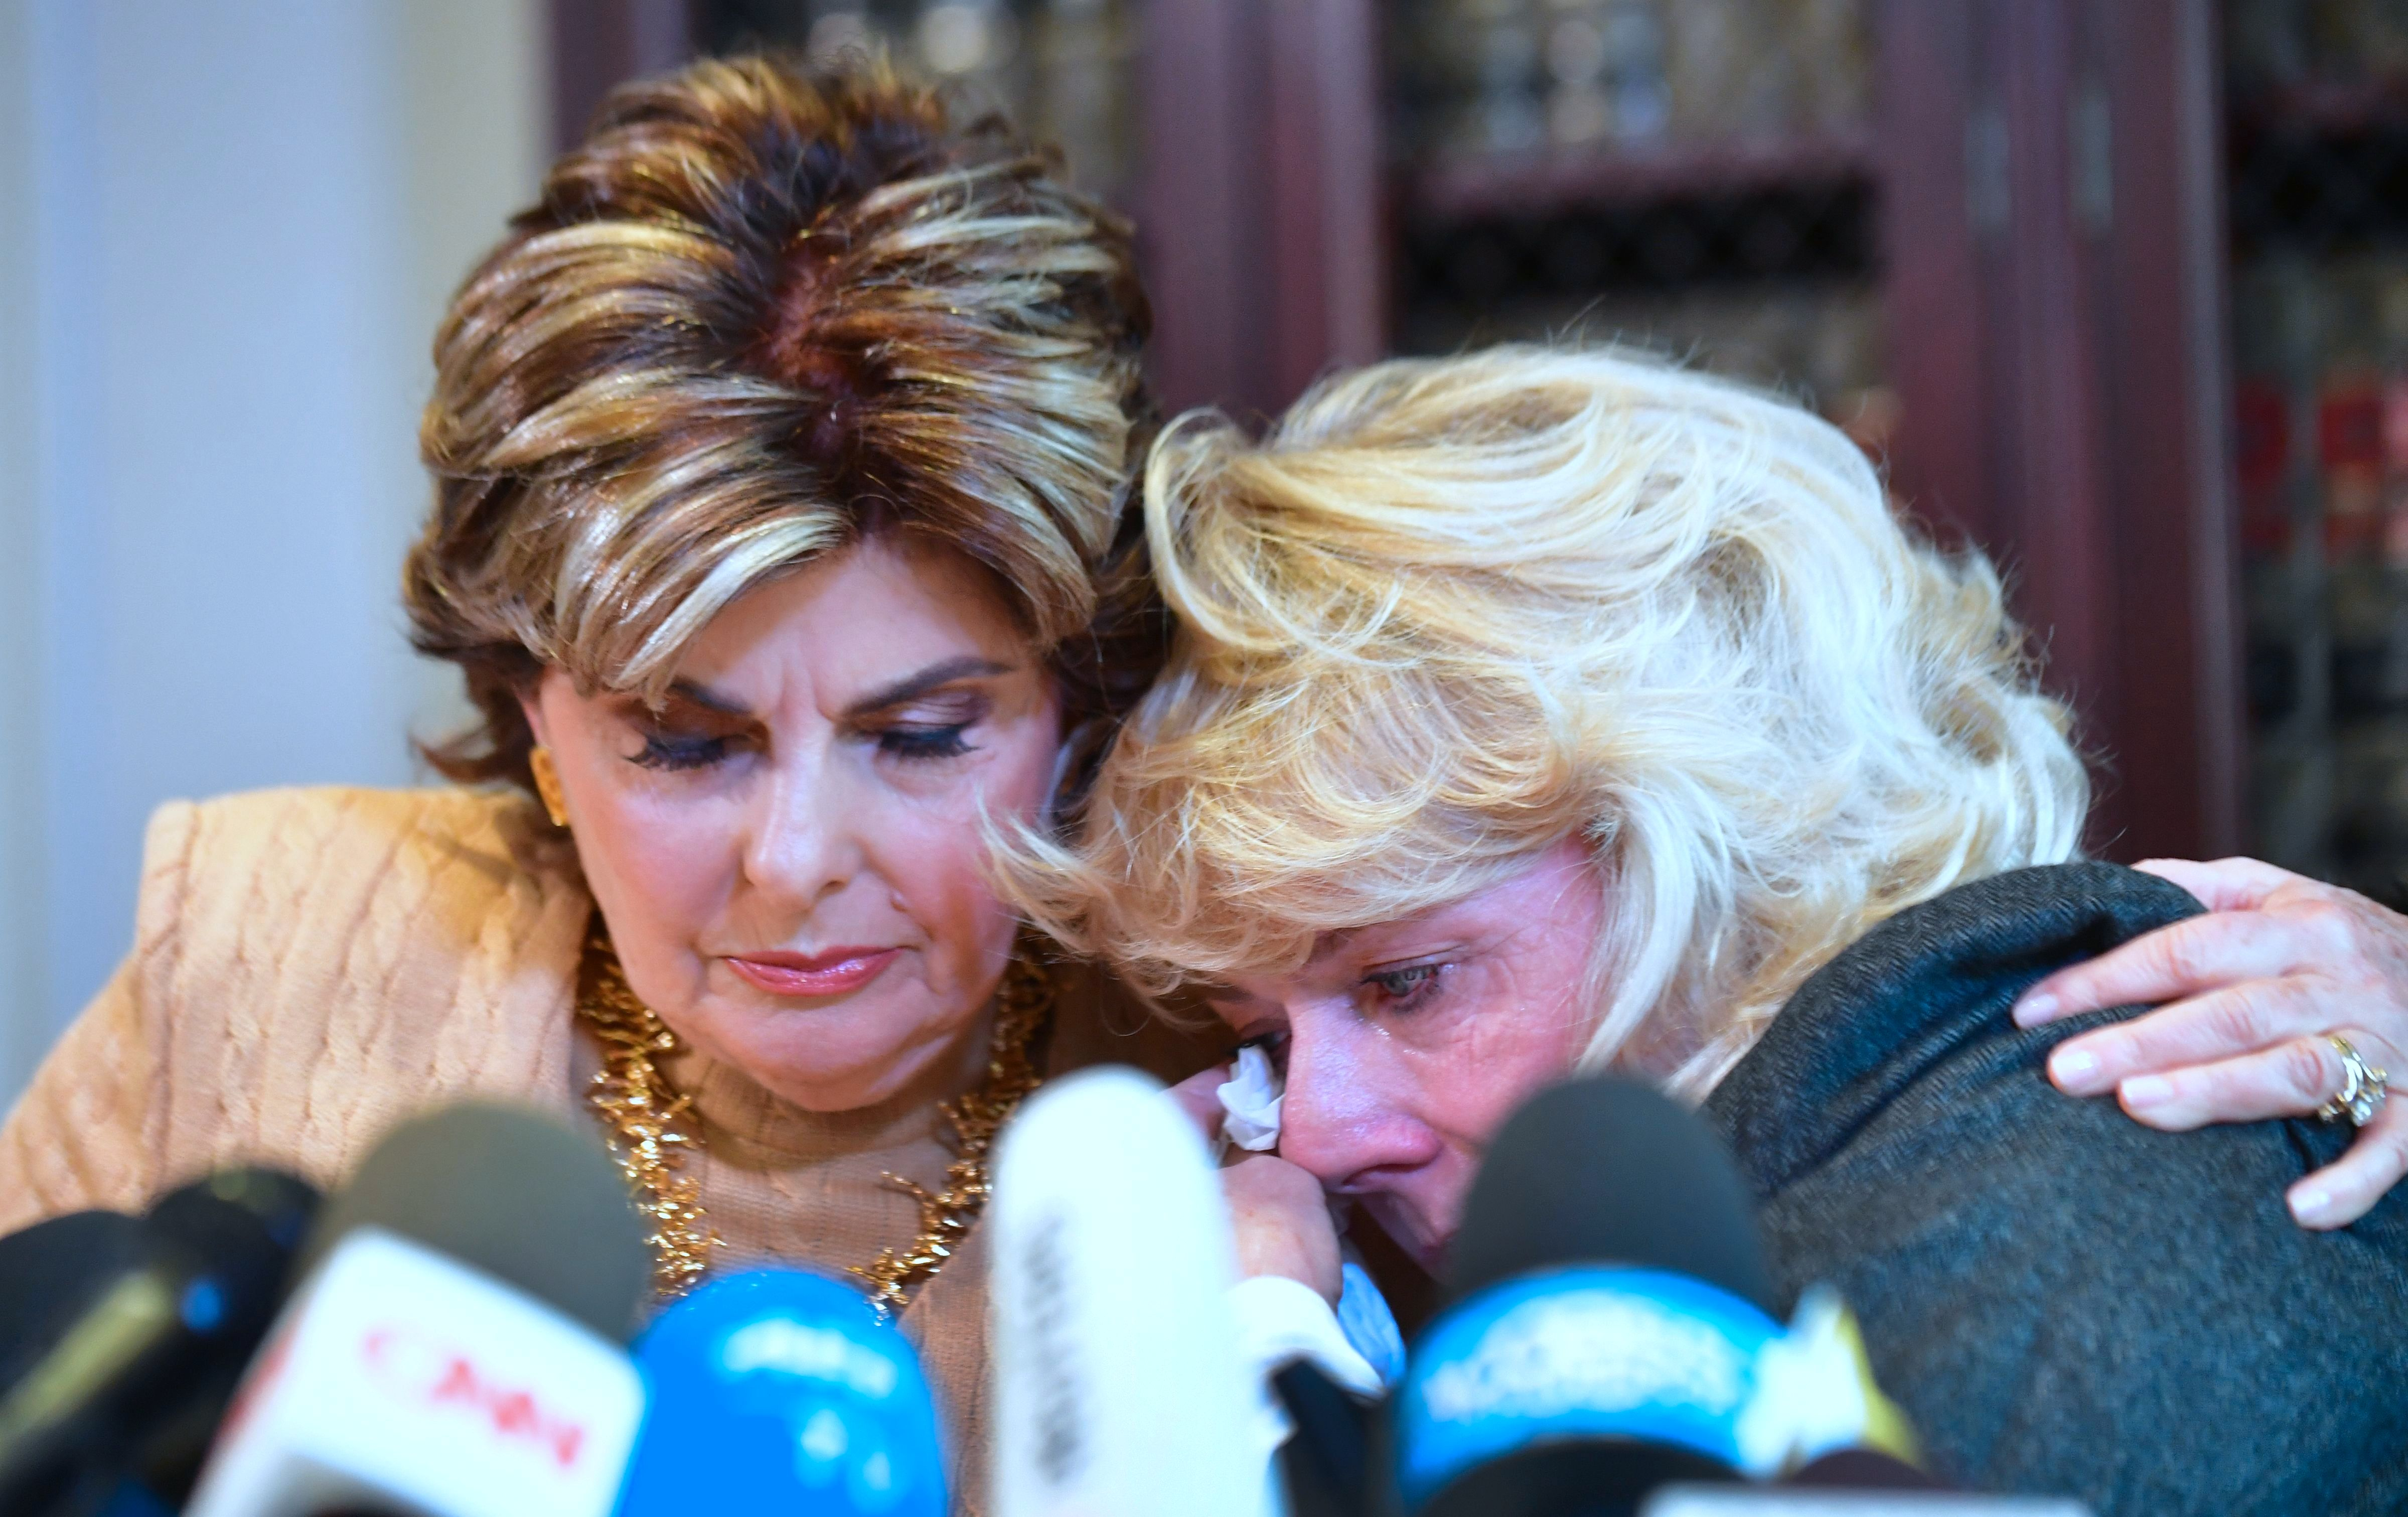 Heather Kerr, right, reacts afteralleging in anews conference that she was sexually harassed by film producer Har